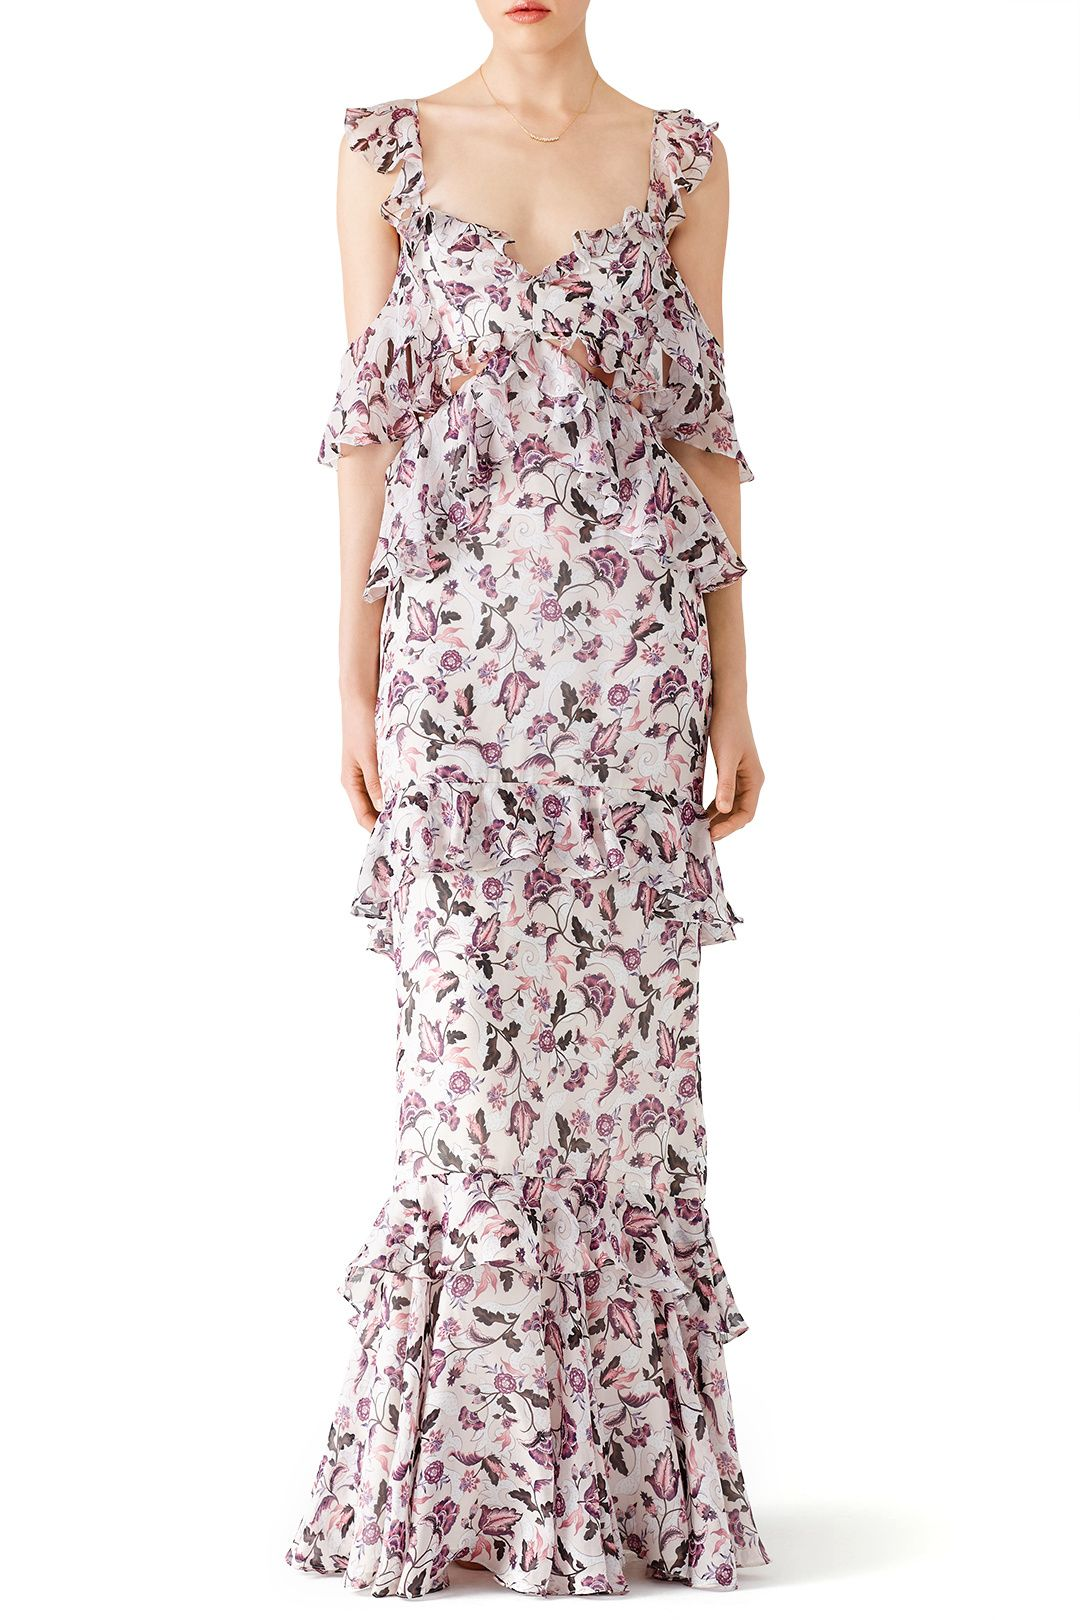 Rent Pink Priscilla Gown By Amur For 115 150 Only At Rent The